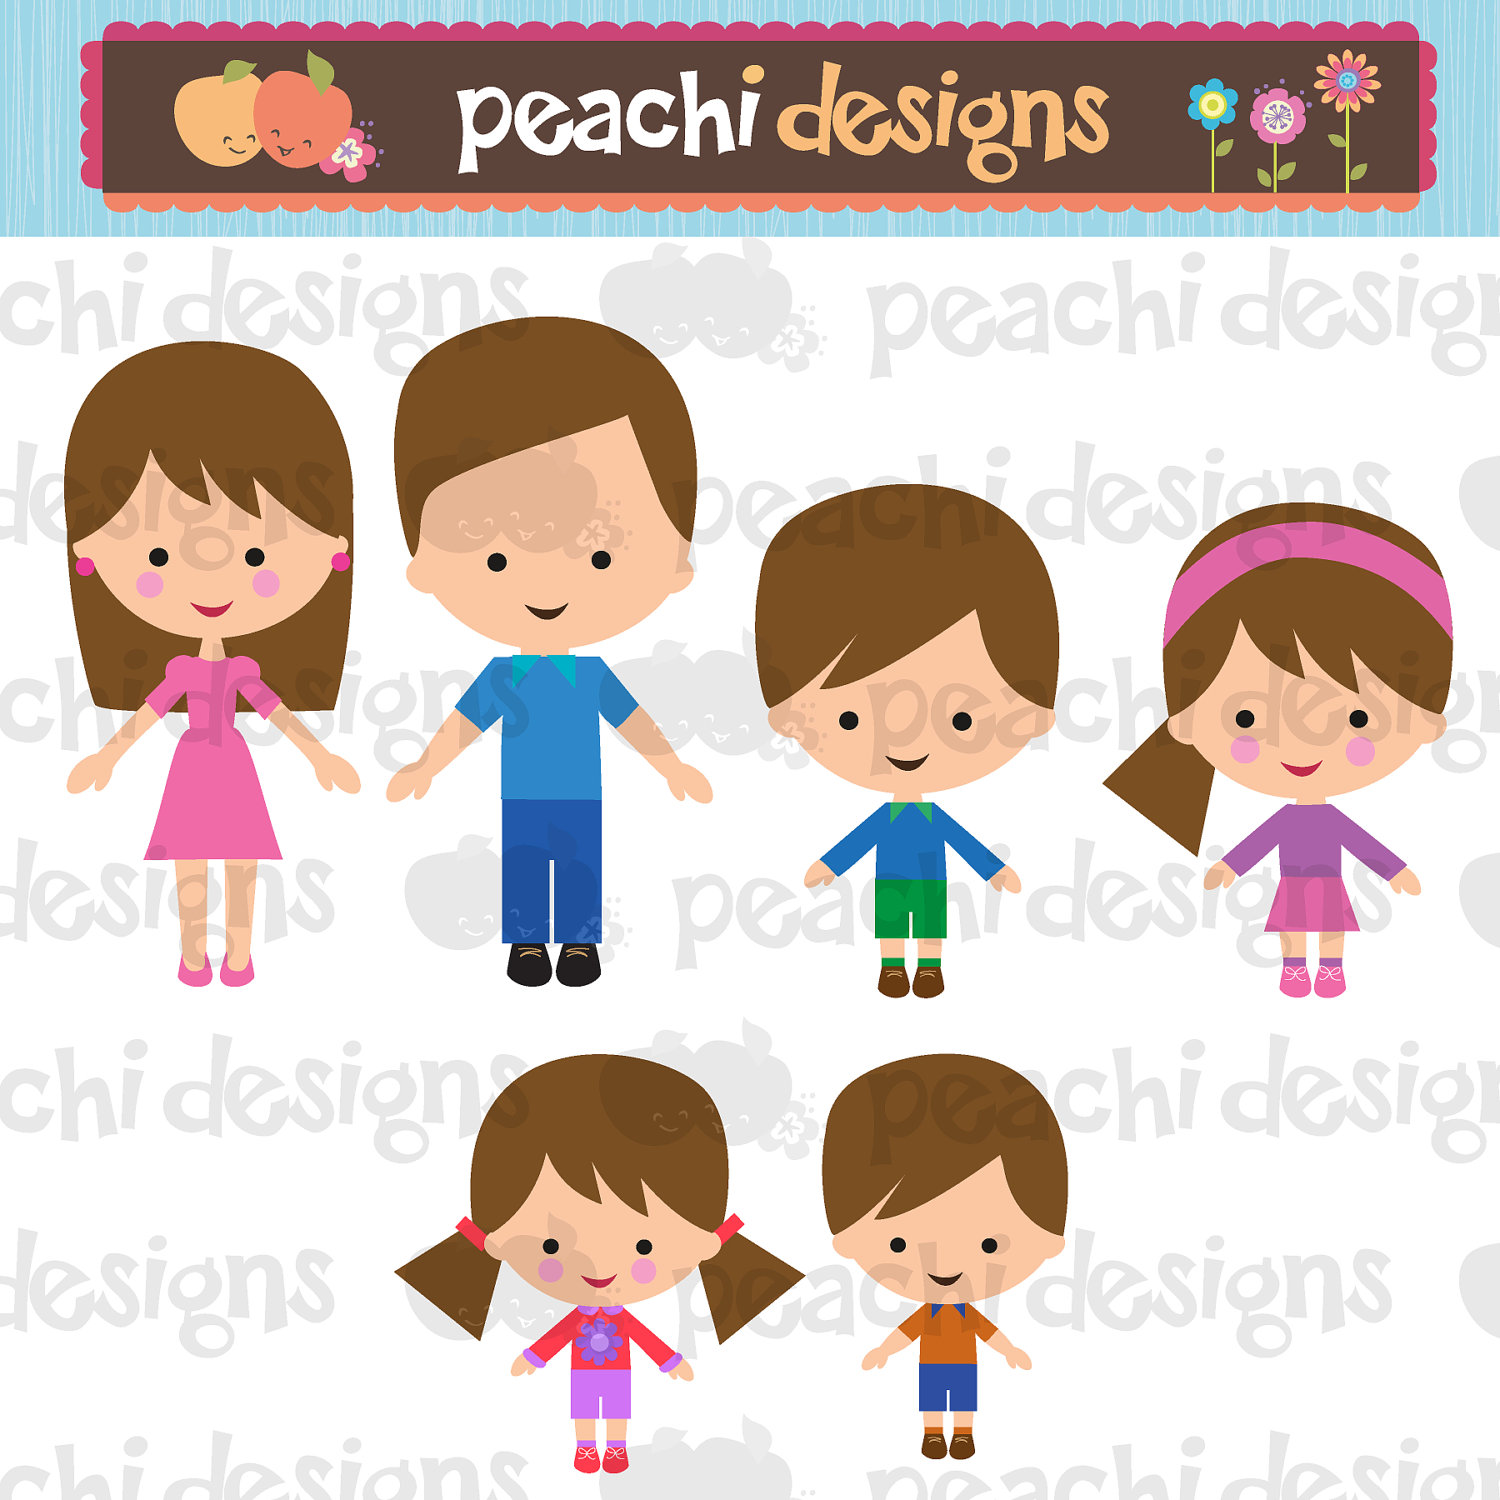 4 siblings clipart with 3 girls and 1 boy - ClipartFest picture black and white download